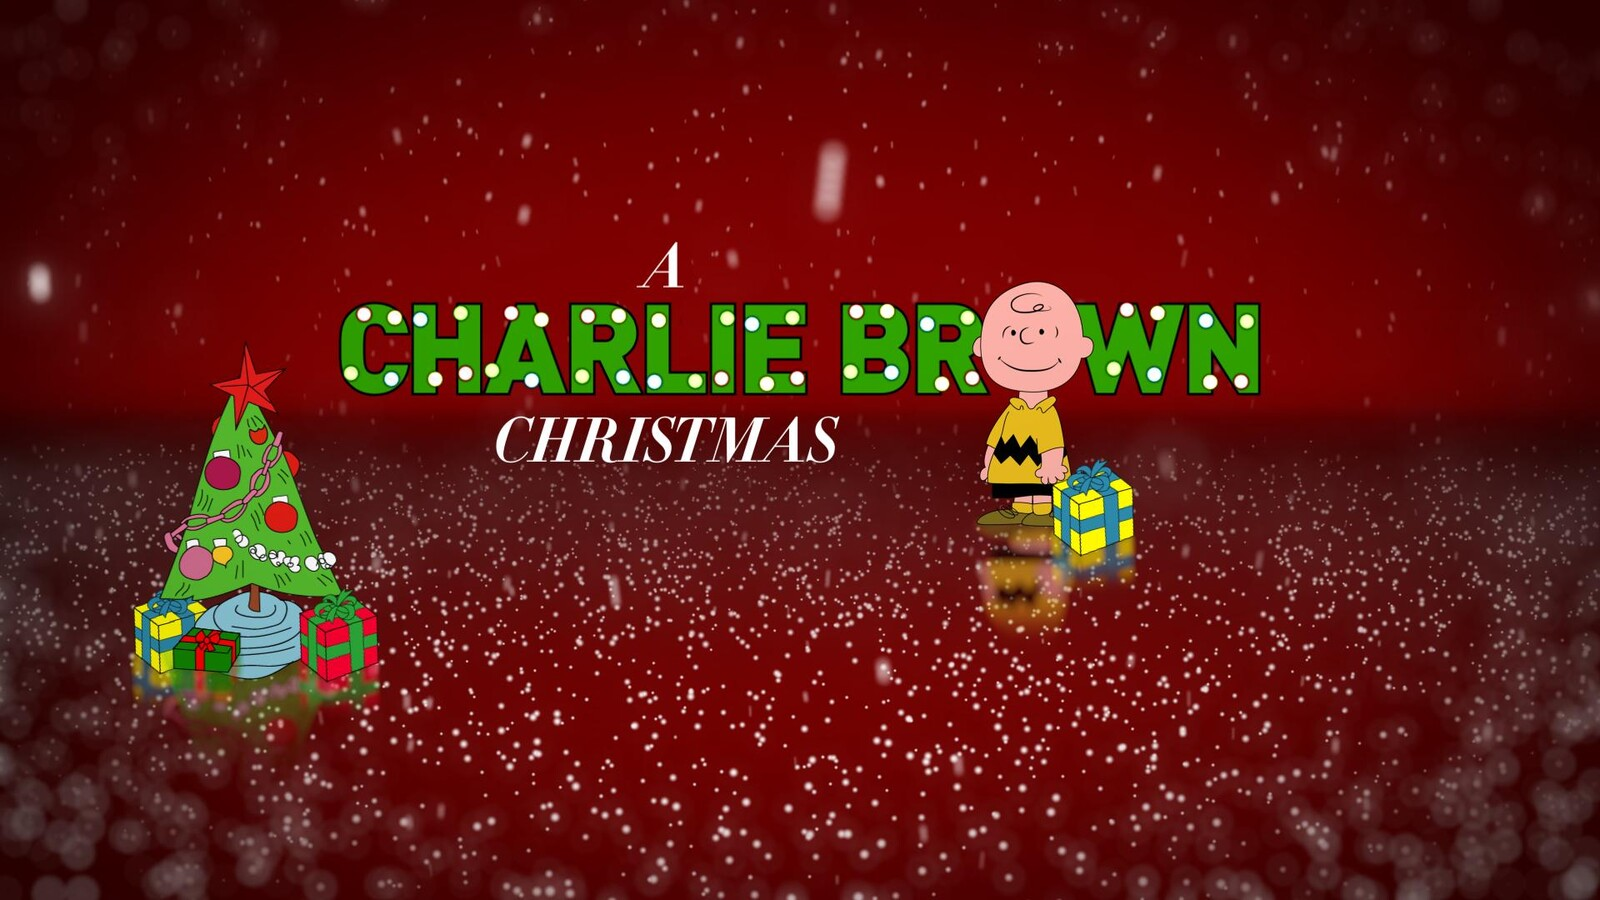 Charlie Brown Christmas Abc 2020 When Is A Charlie Brown Christmas Movie on TV 2019? | ABC Updates